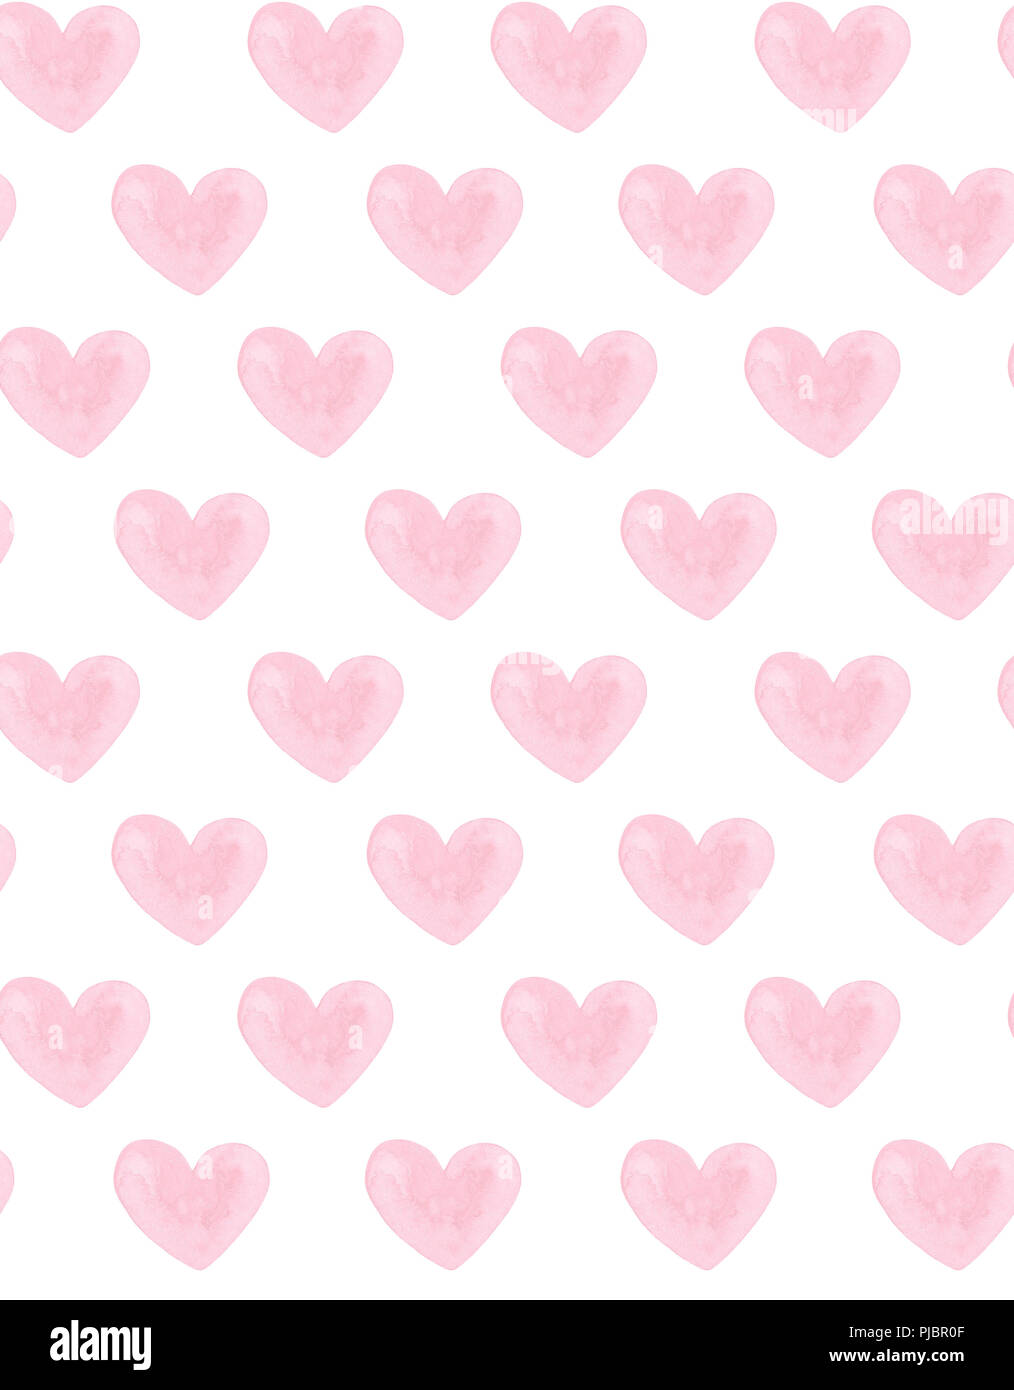 Watercolor Pink Hearts Valentines Day Love Background Stock Photo